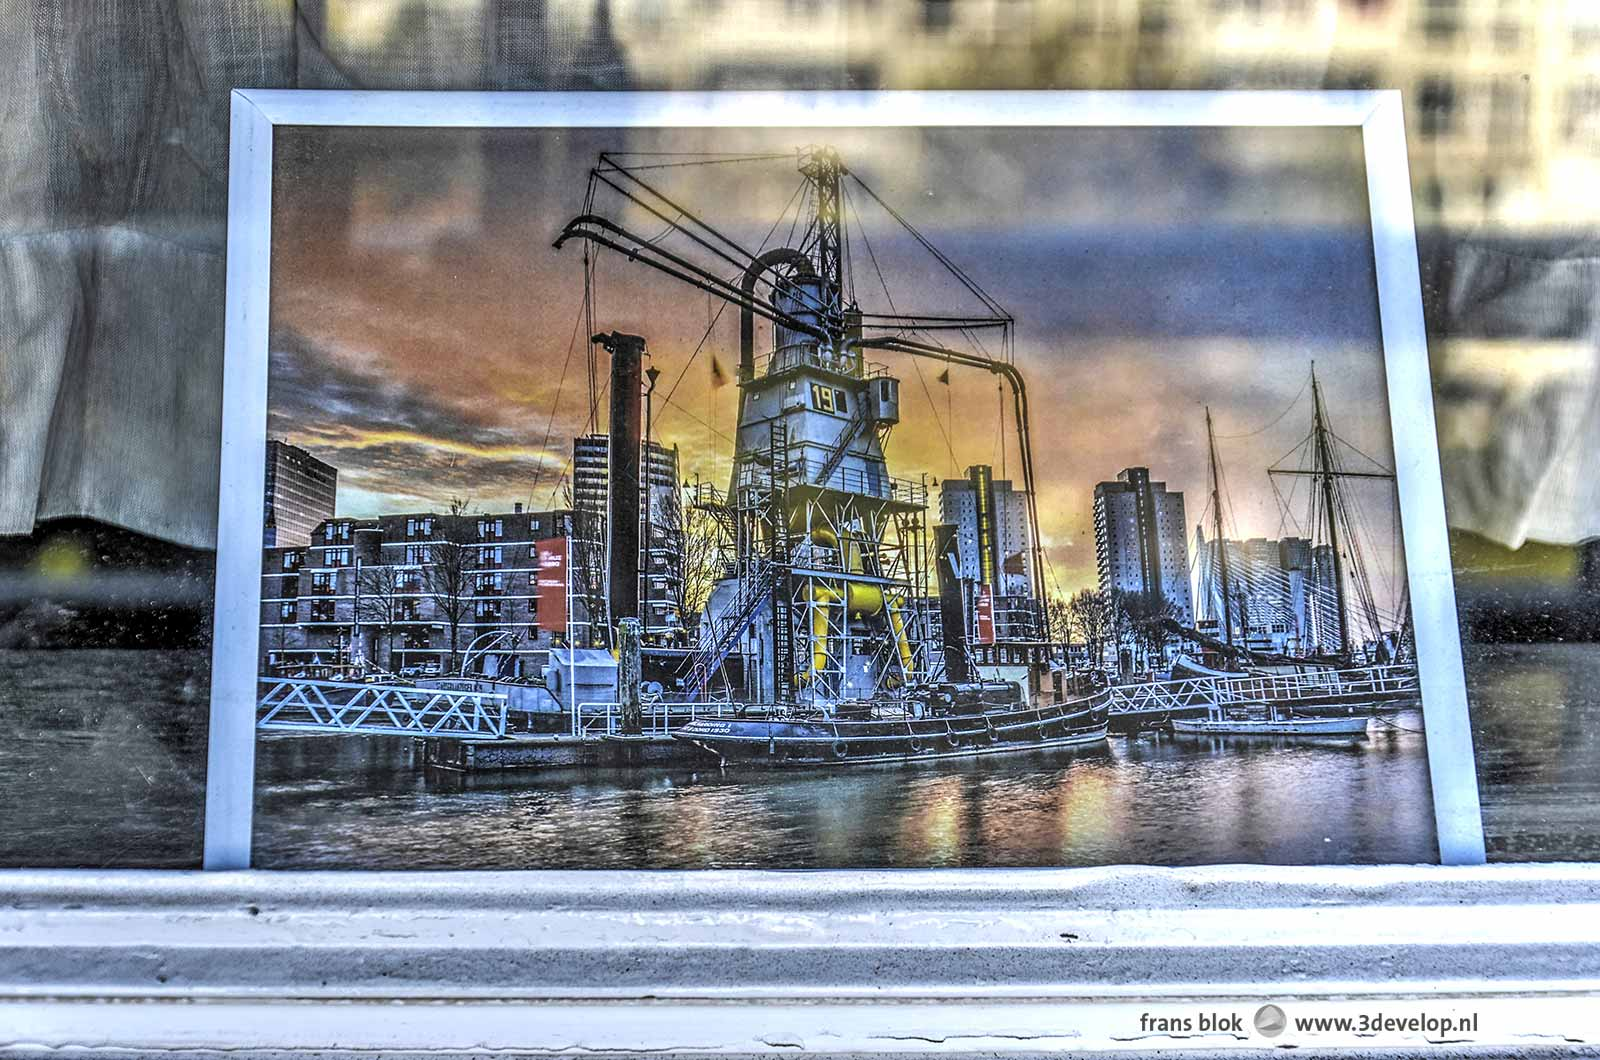 Framed photograph of the grain elevator at the Maritime Museum, on exhibition in the 3Develop Lijnbaan gallery